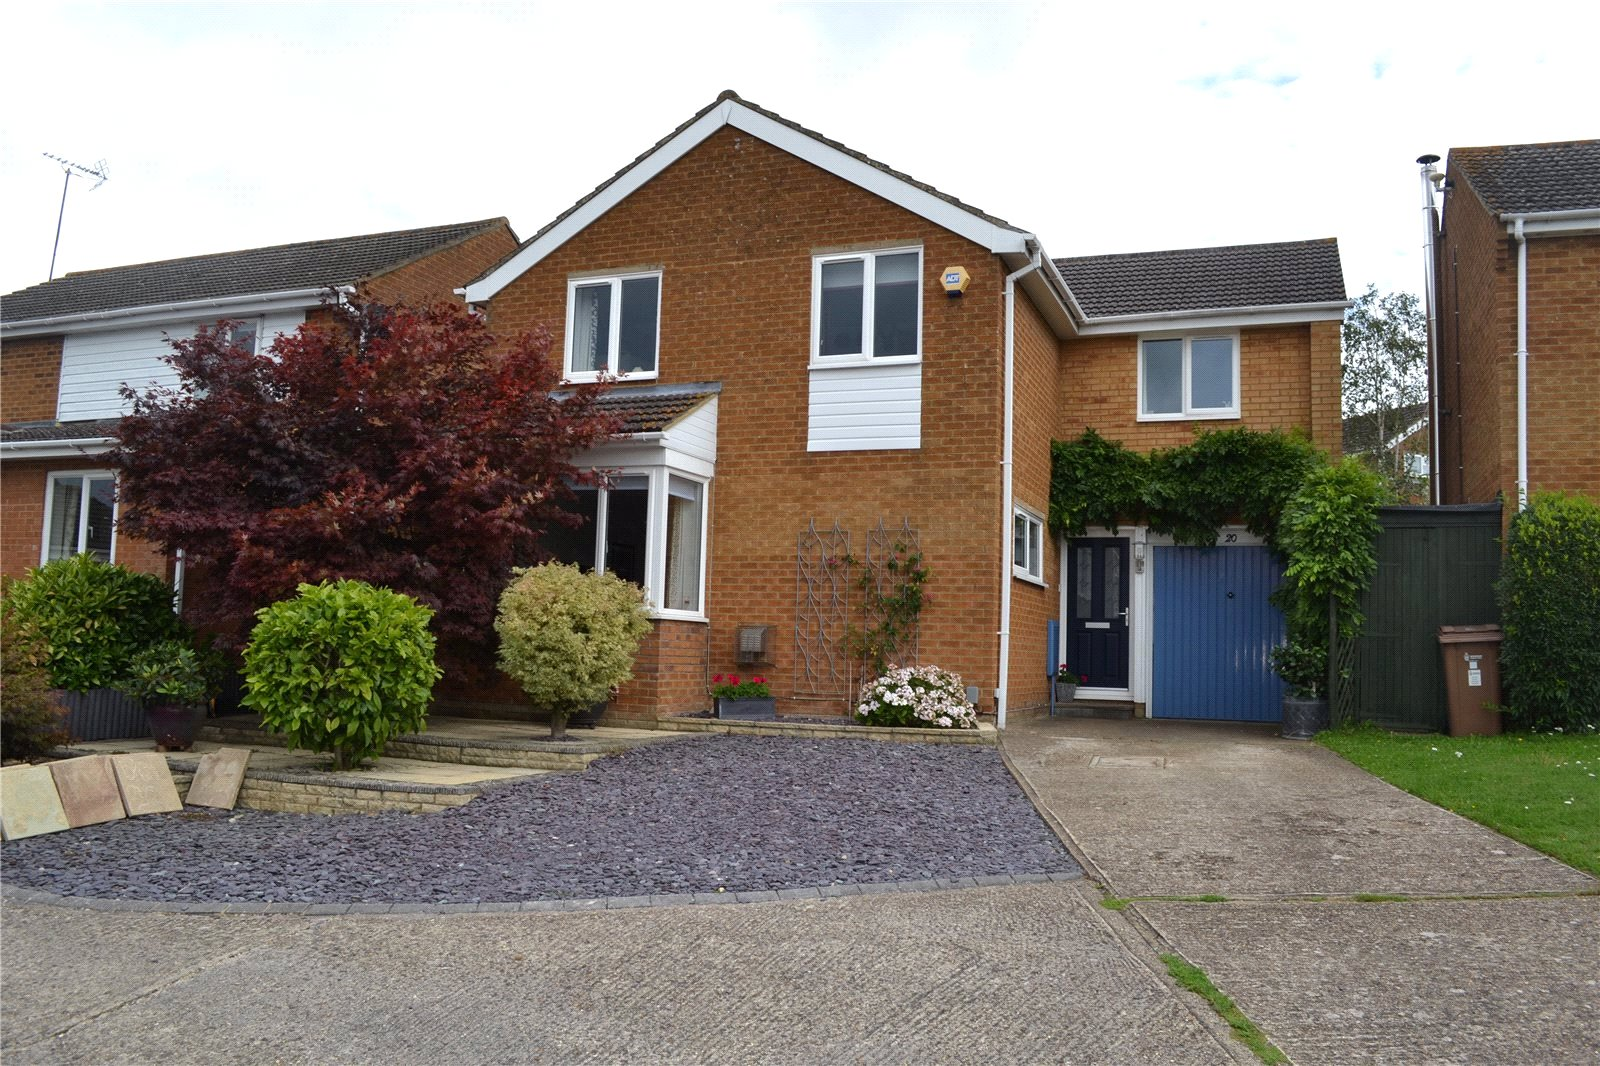 Broadwater Road, Twyford, Berkshire RG10